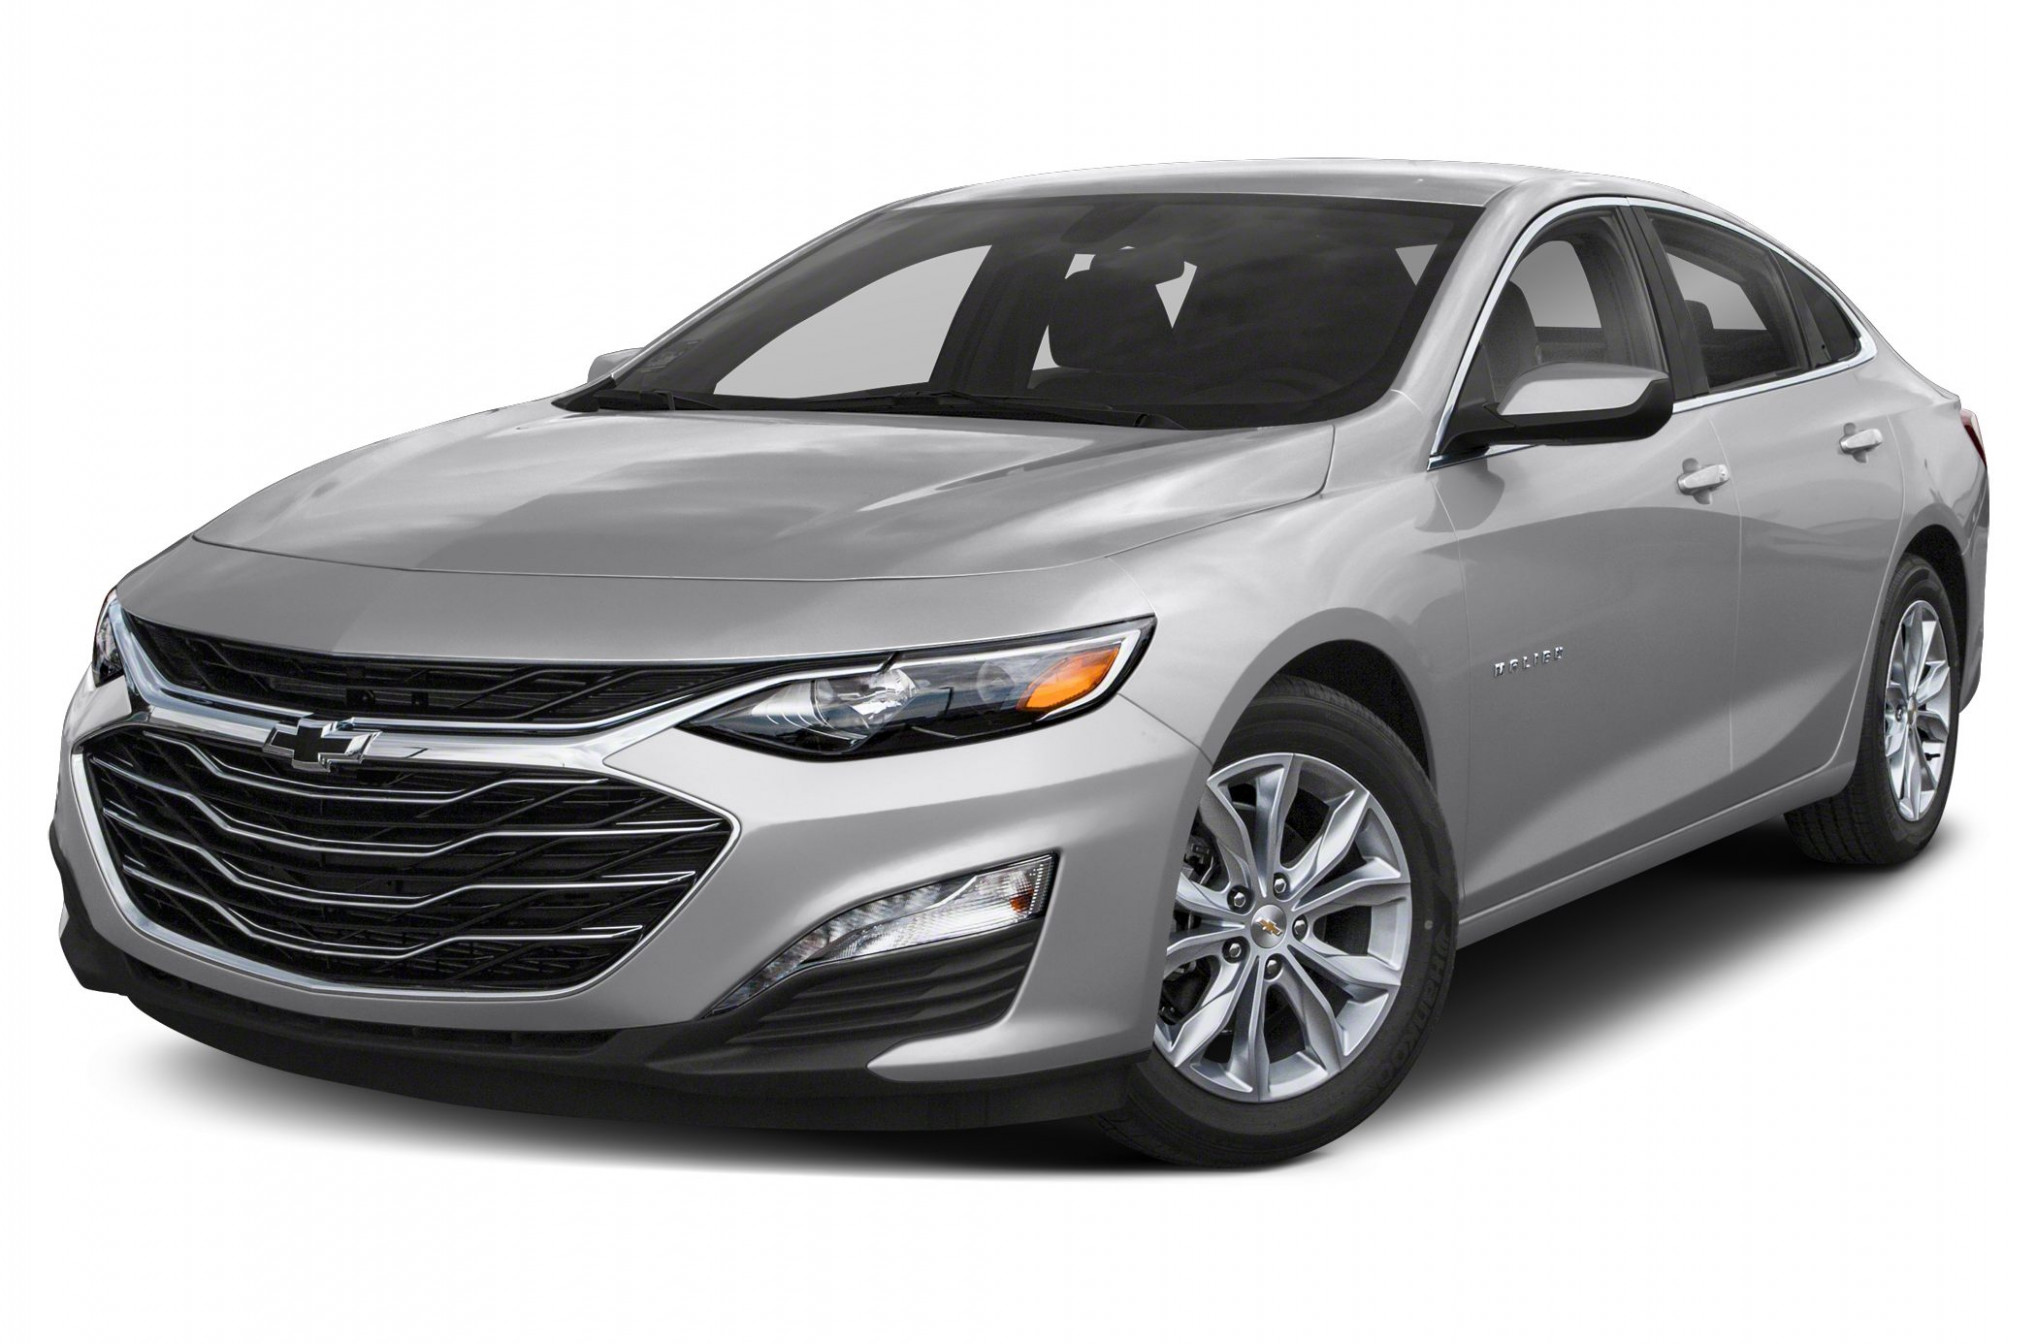 10 Chevrolet Malibu RS 10dr Sedan Specs and Prices